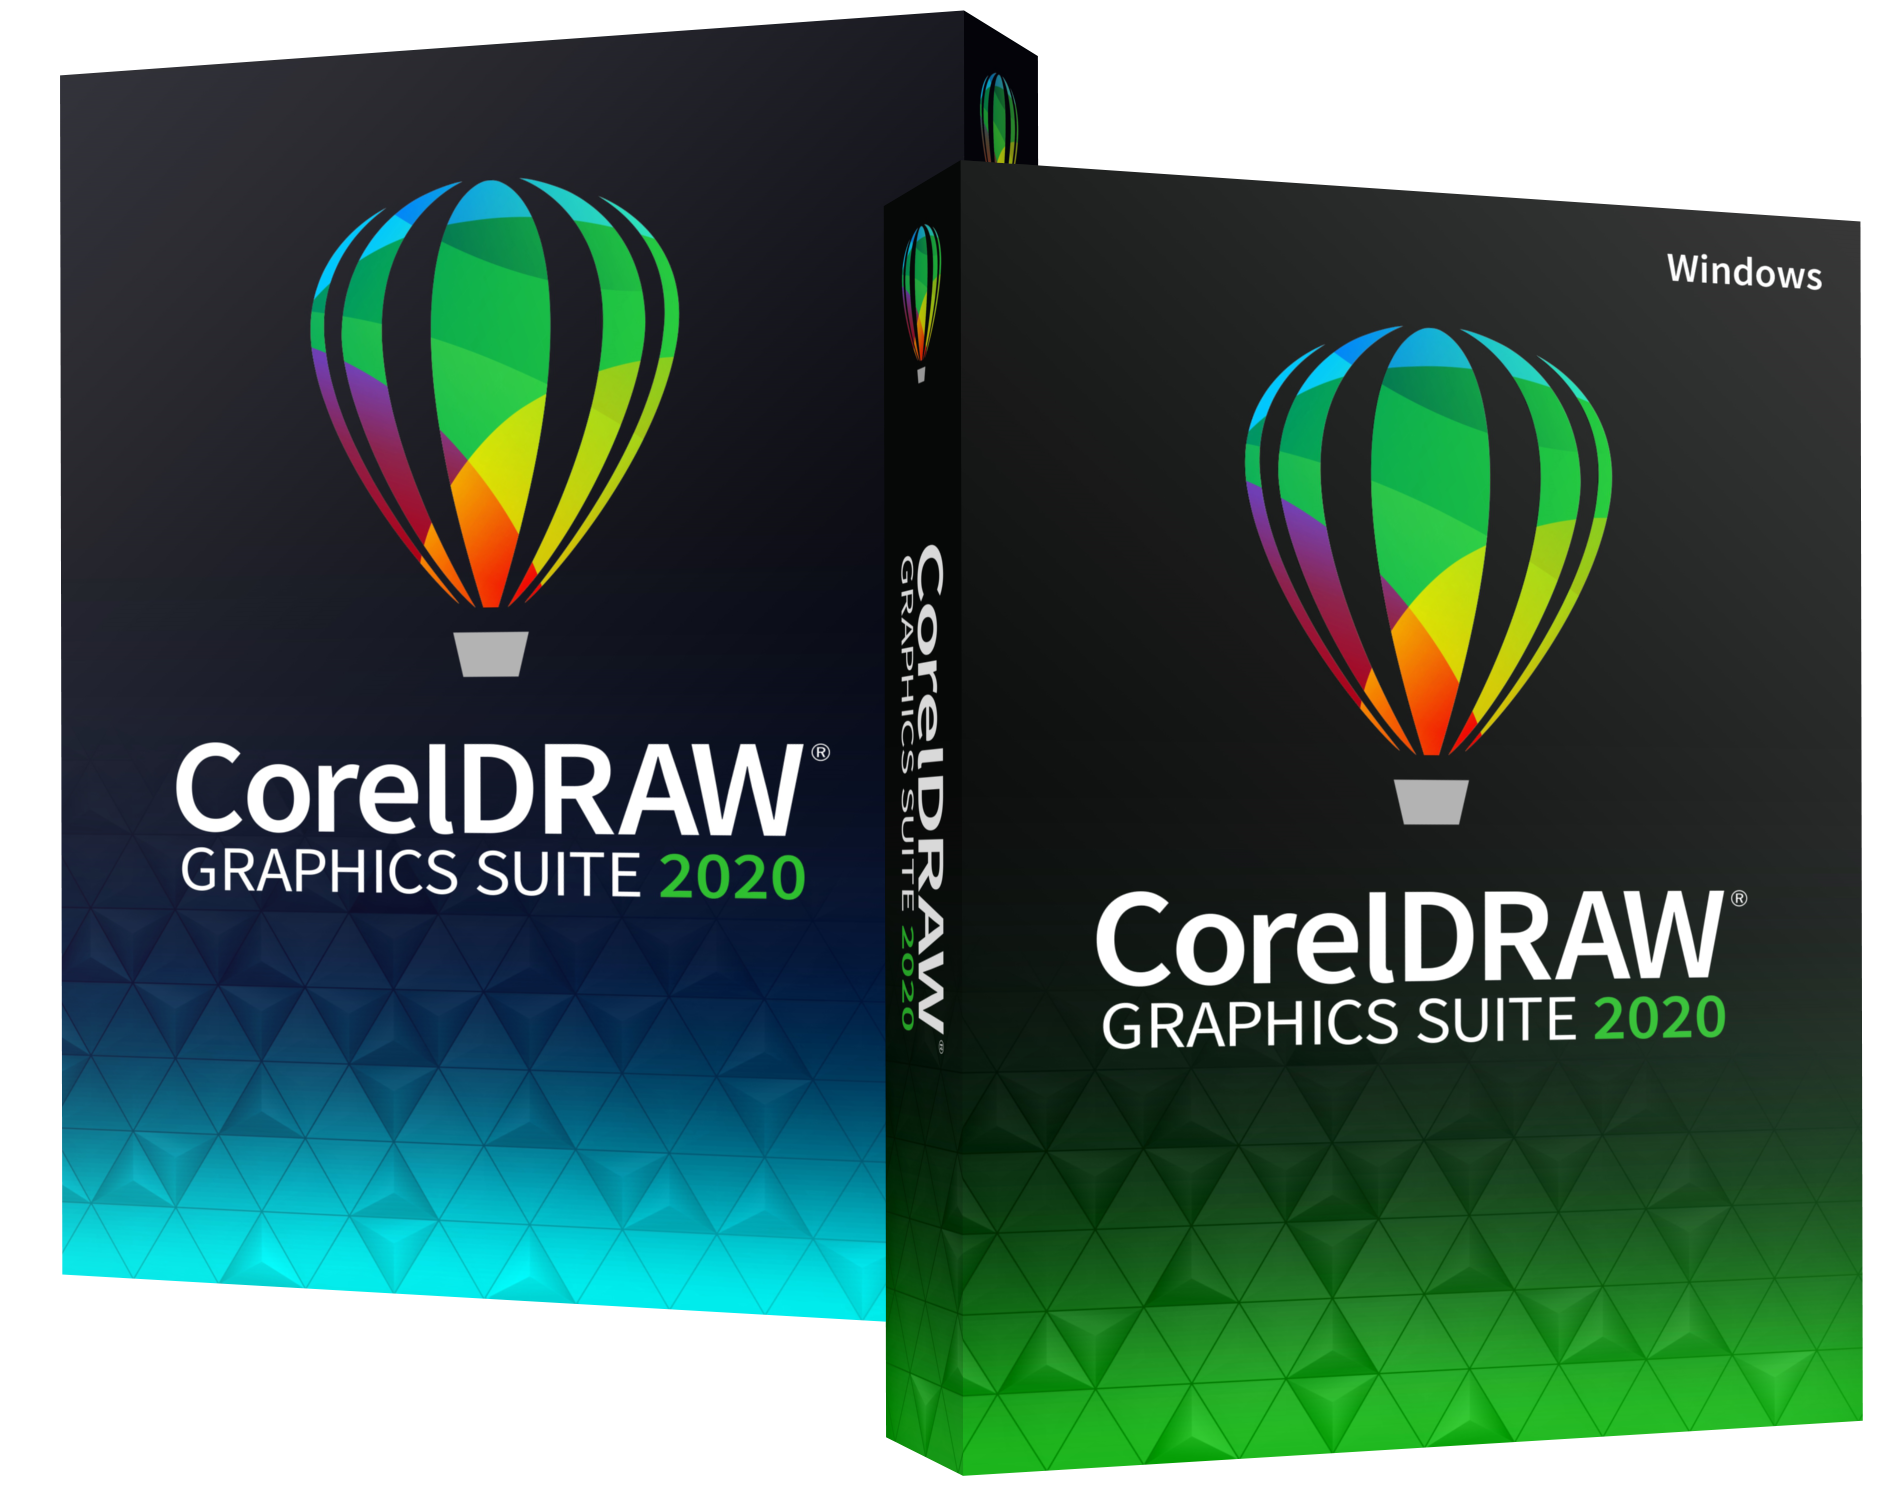 coreldraw-graphics-suite-2020-boxed-mac-windows.png